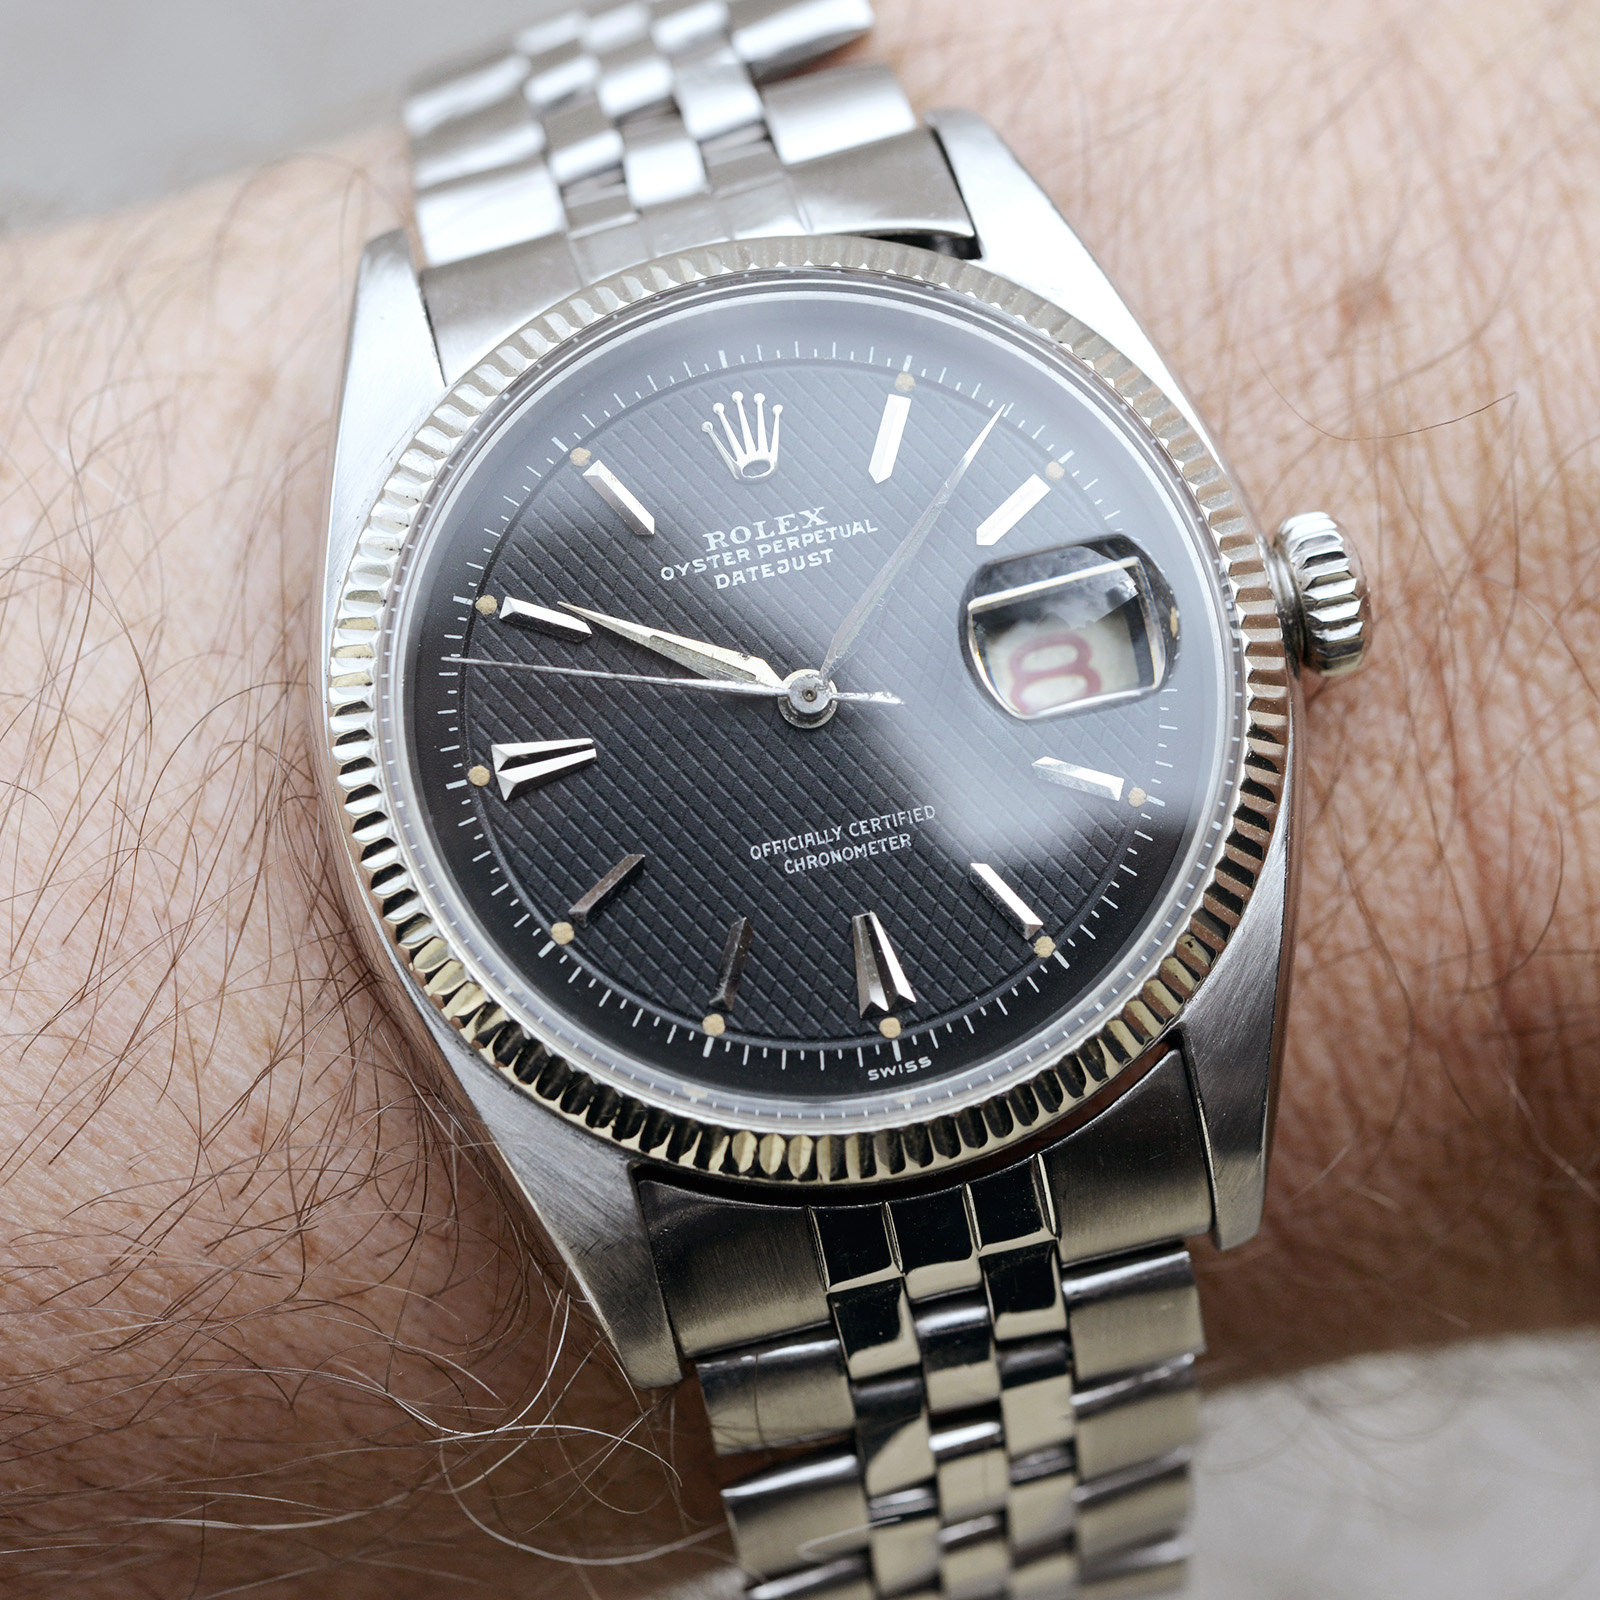 Rolex Datejust ref-6305 Waffle Dial Bulang and Sons